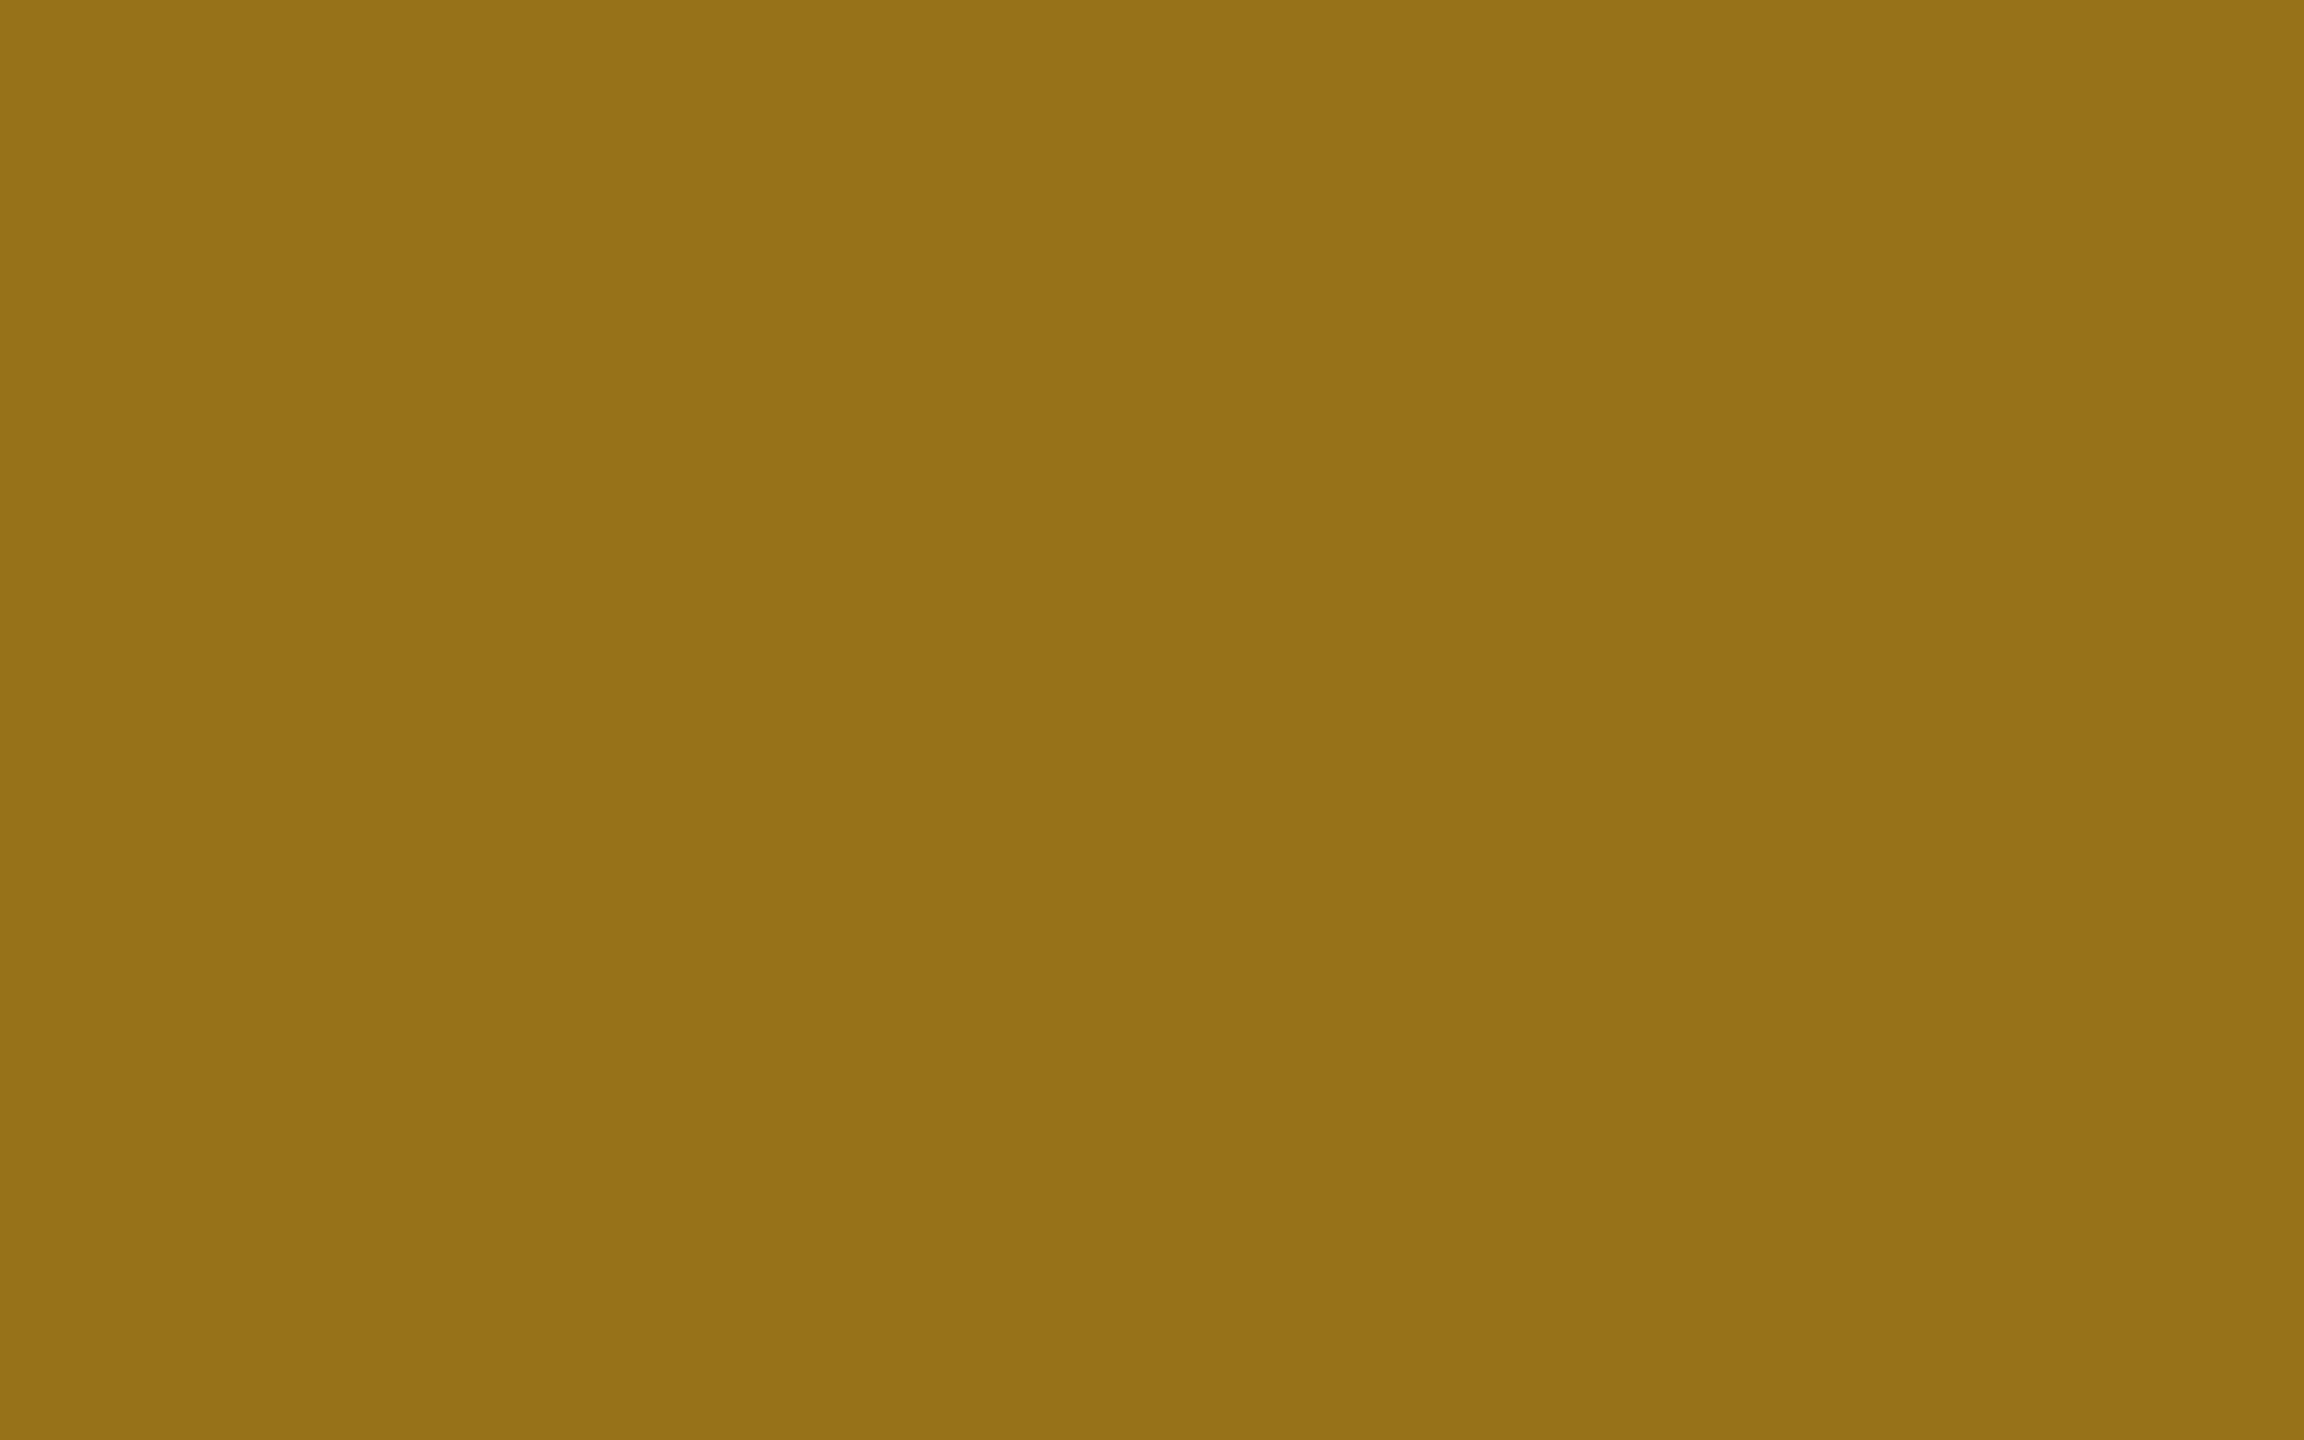 2304x1440 Drab Solid Color Background